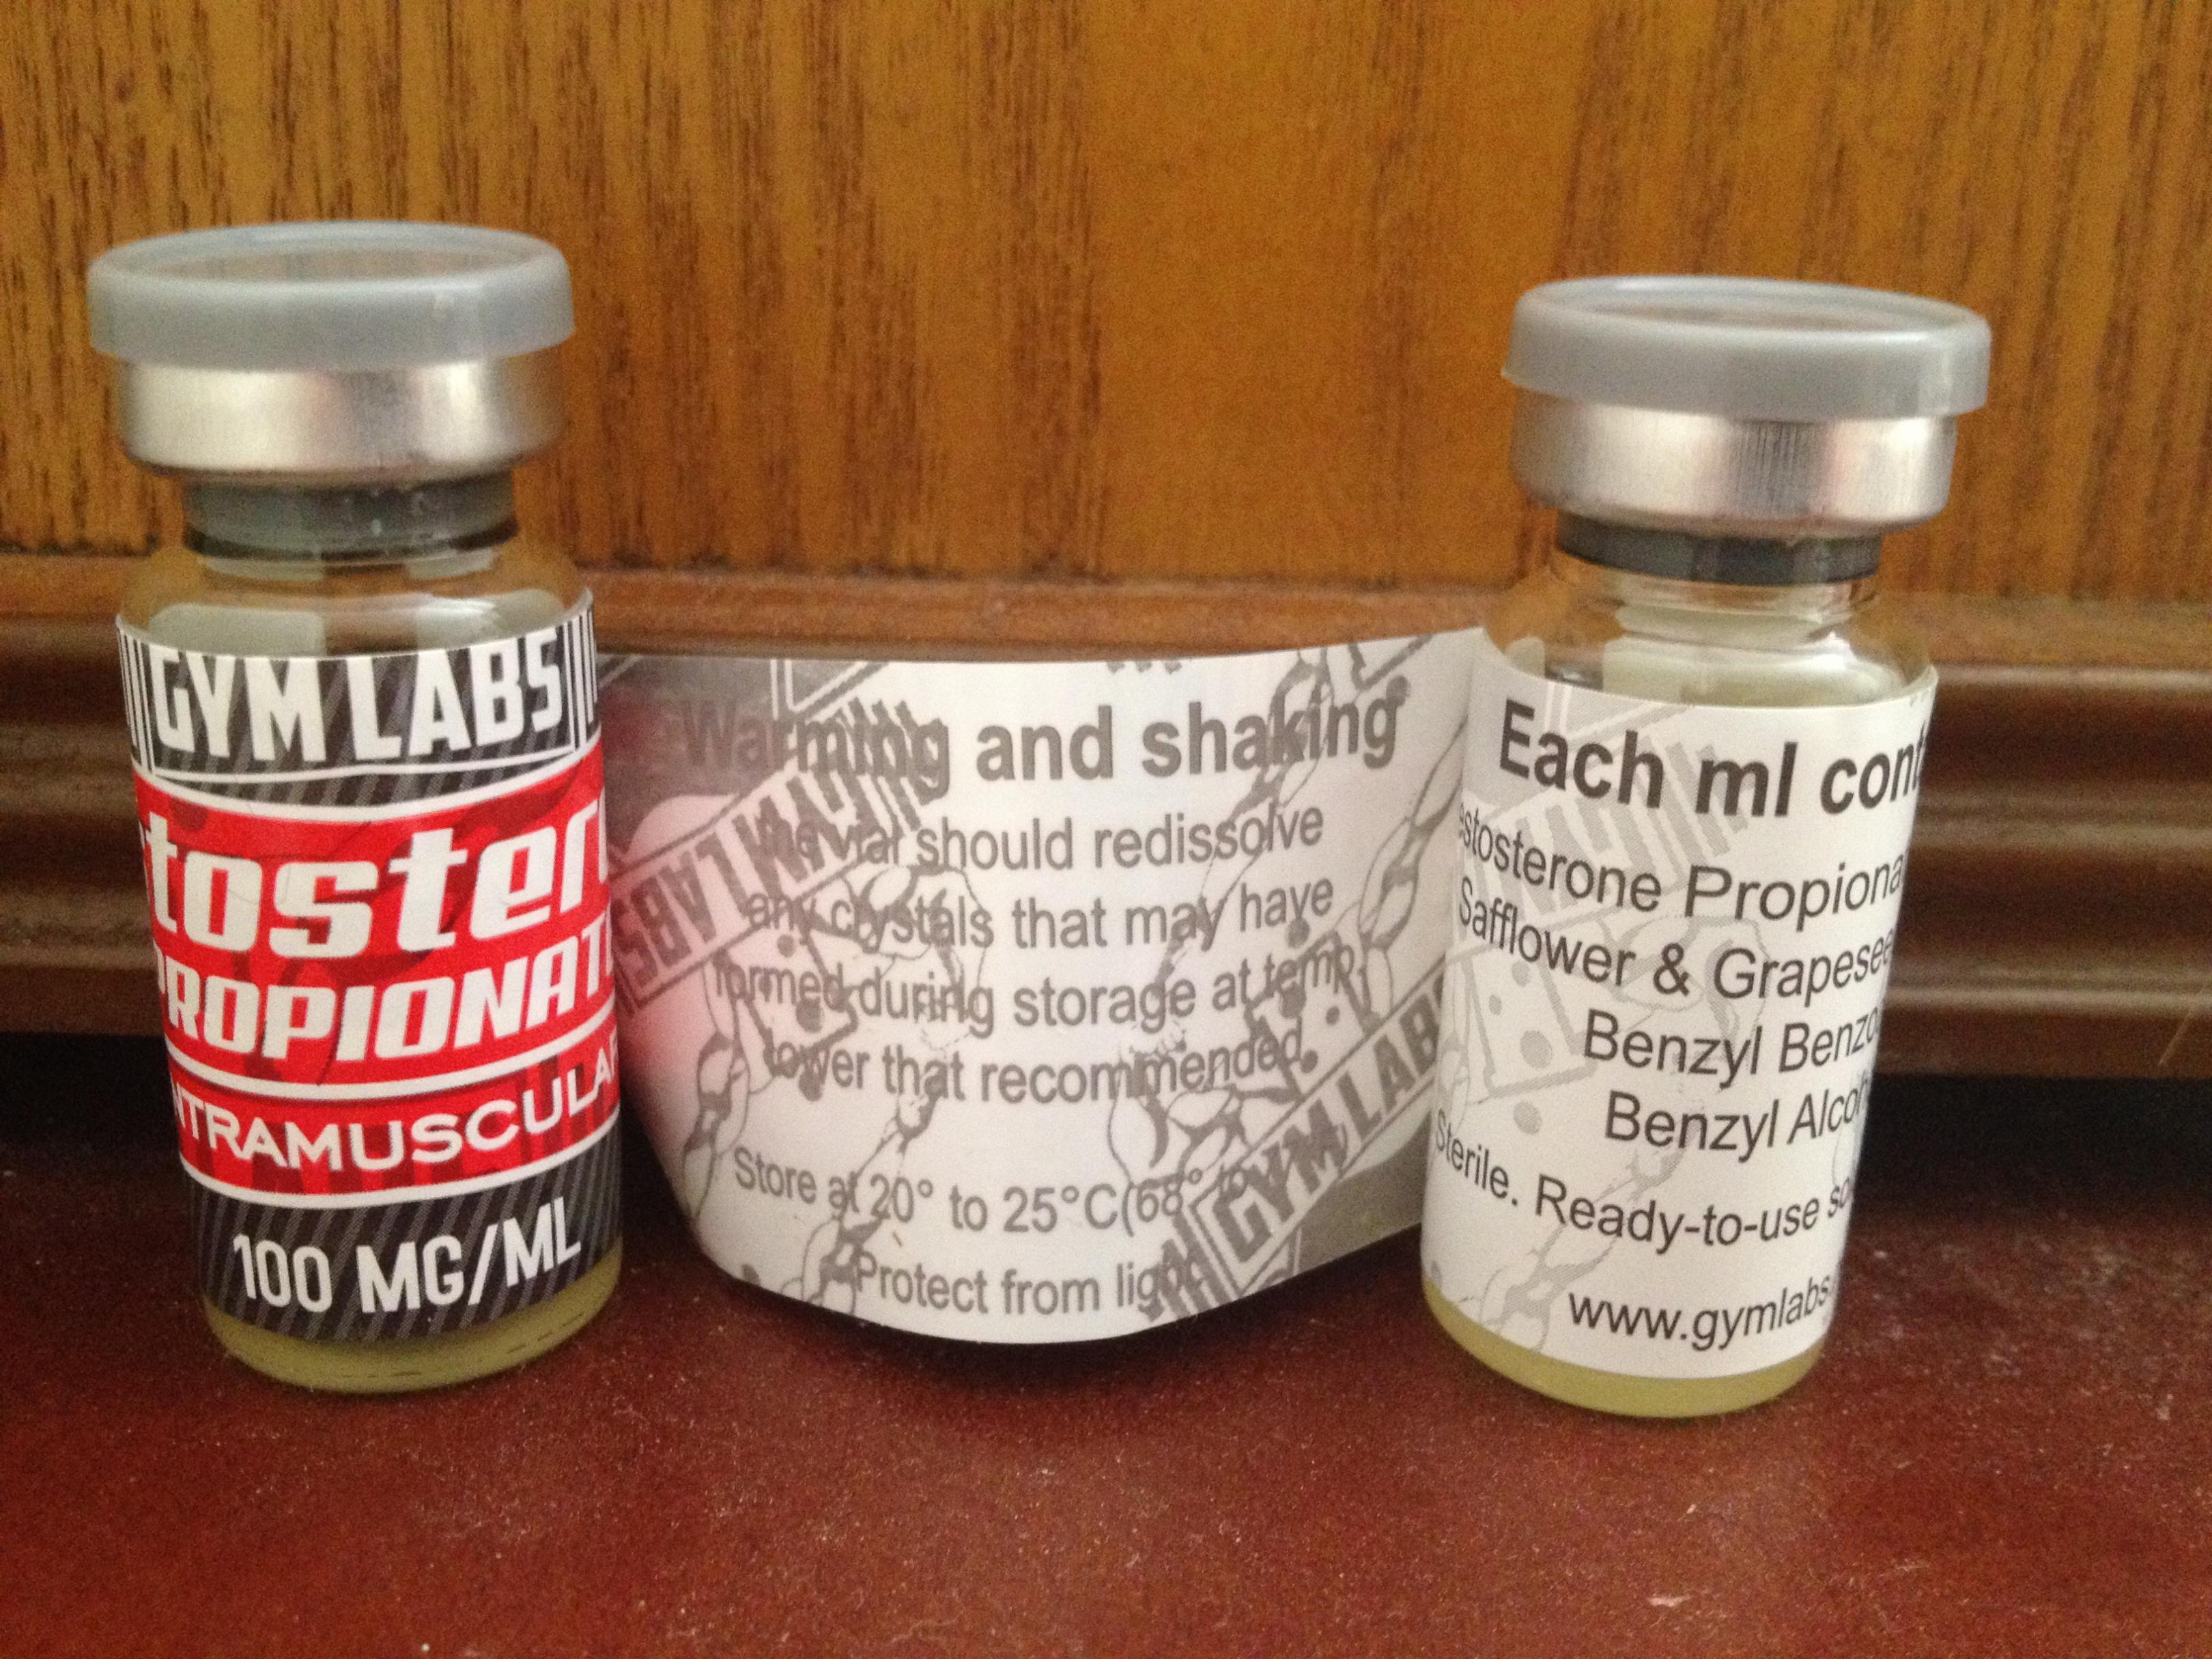 Using Steroids to Prepare for a Drug-Tested Physical